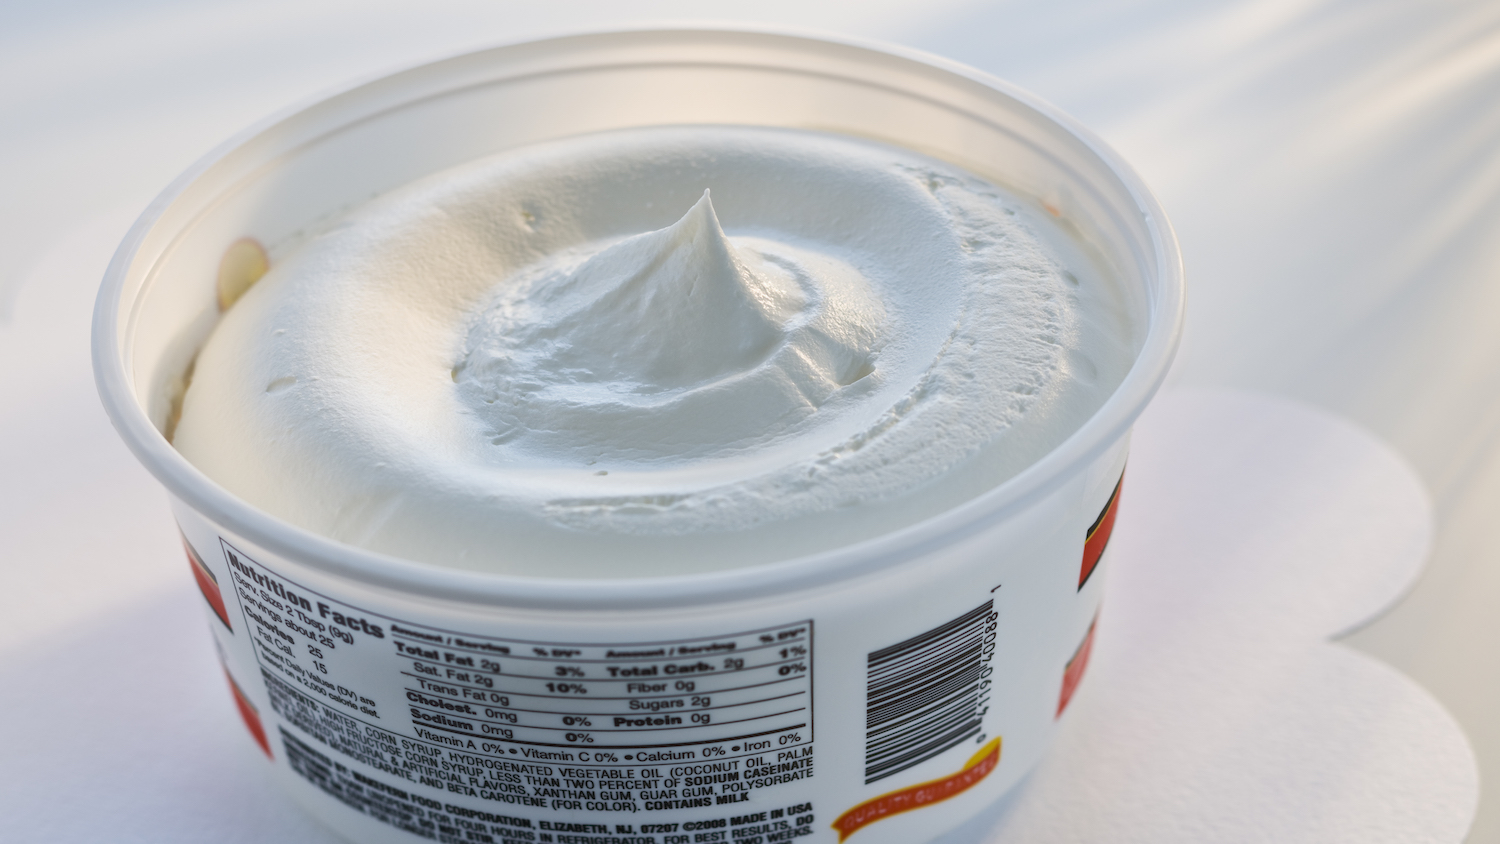 Cheescake-flavored Cool Whip